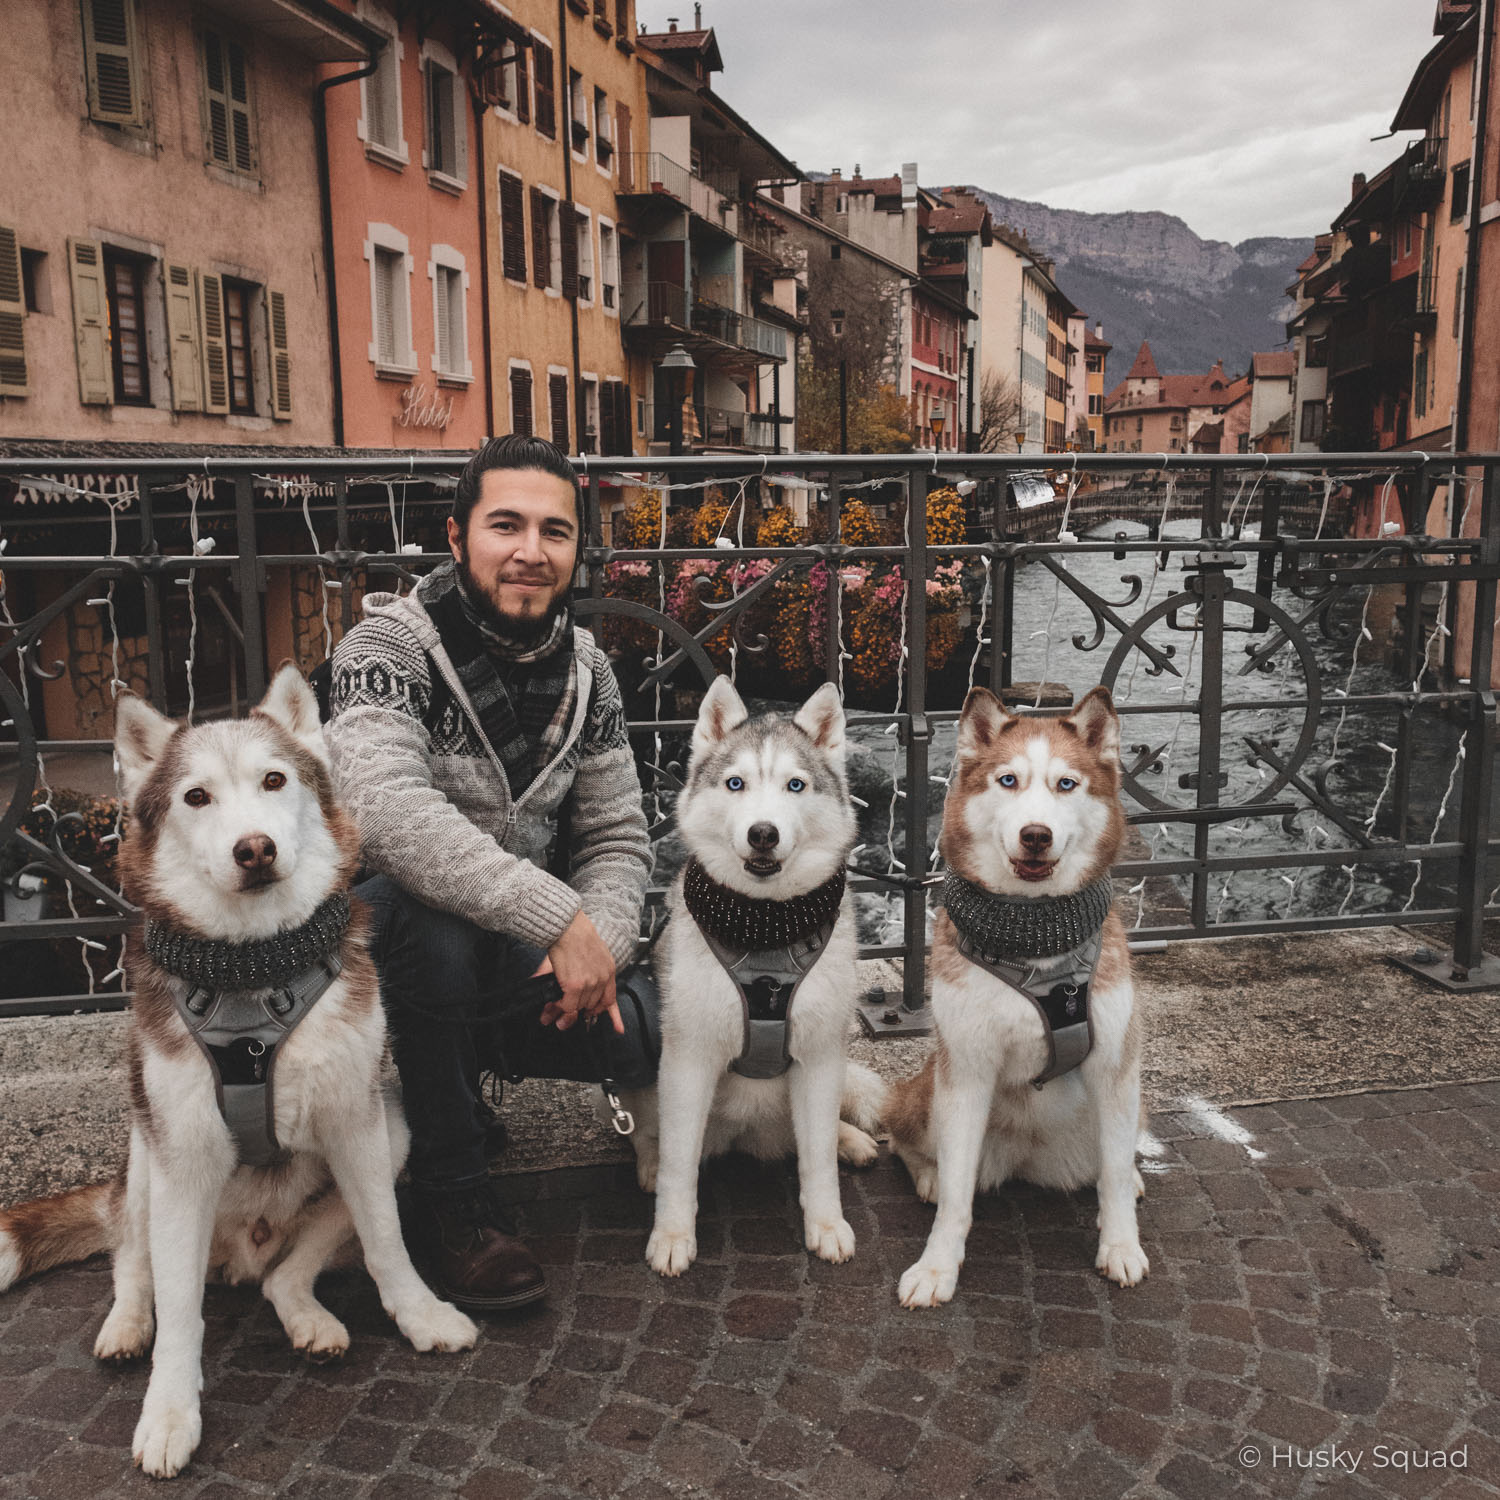 Jc with Husky Squad in Annecy